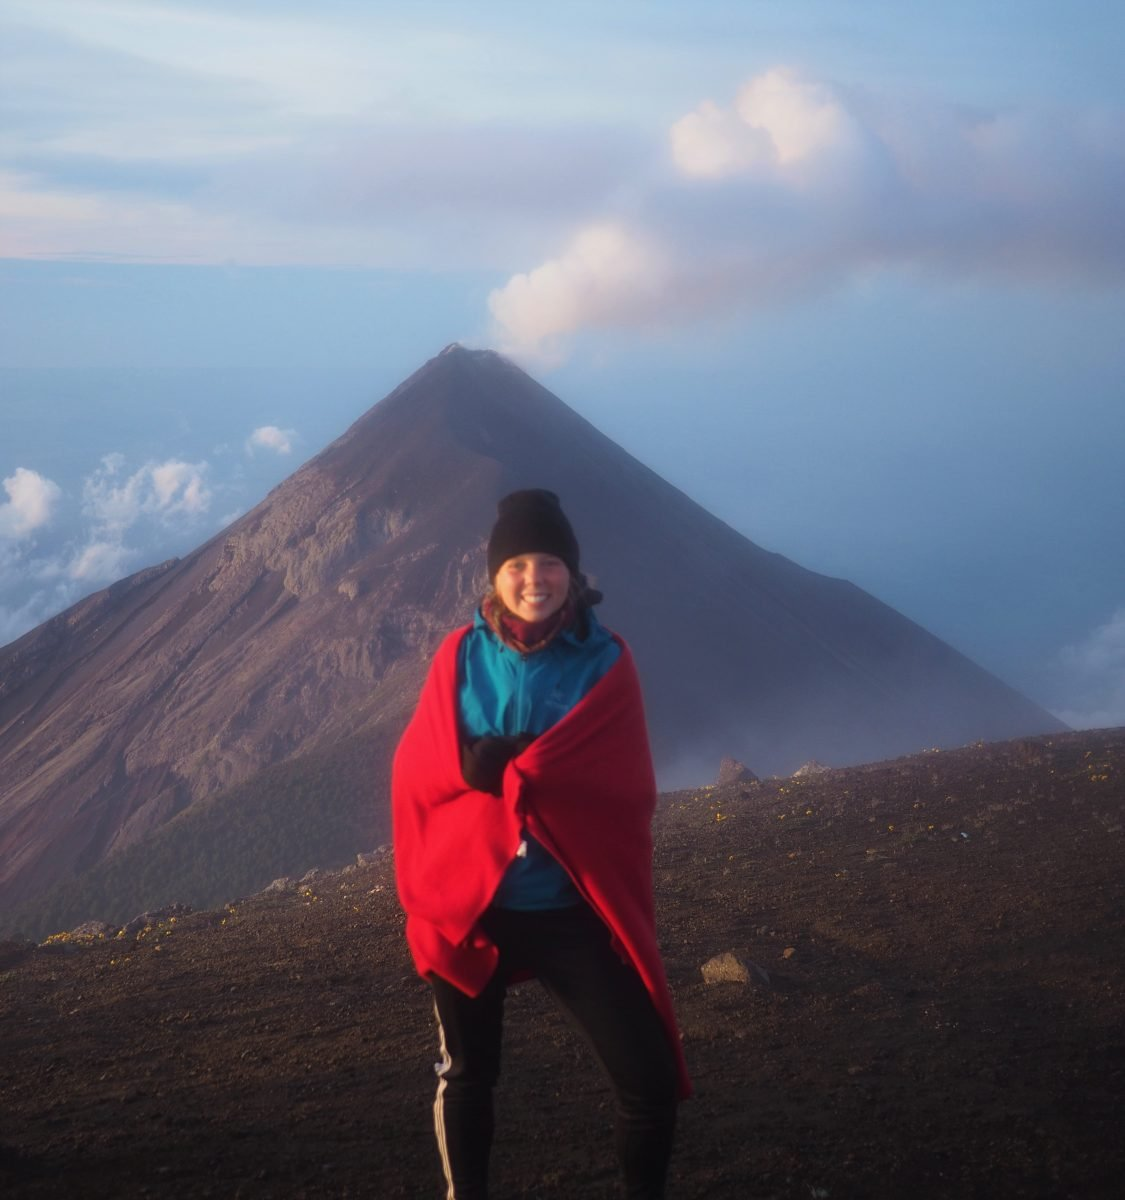 Guatemala Backpacking trip in 2016. Picture of my happiness at the summit of the Acatenango Volcano and in front of the Fuego Volcano taken by Nate Powell.